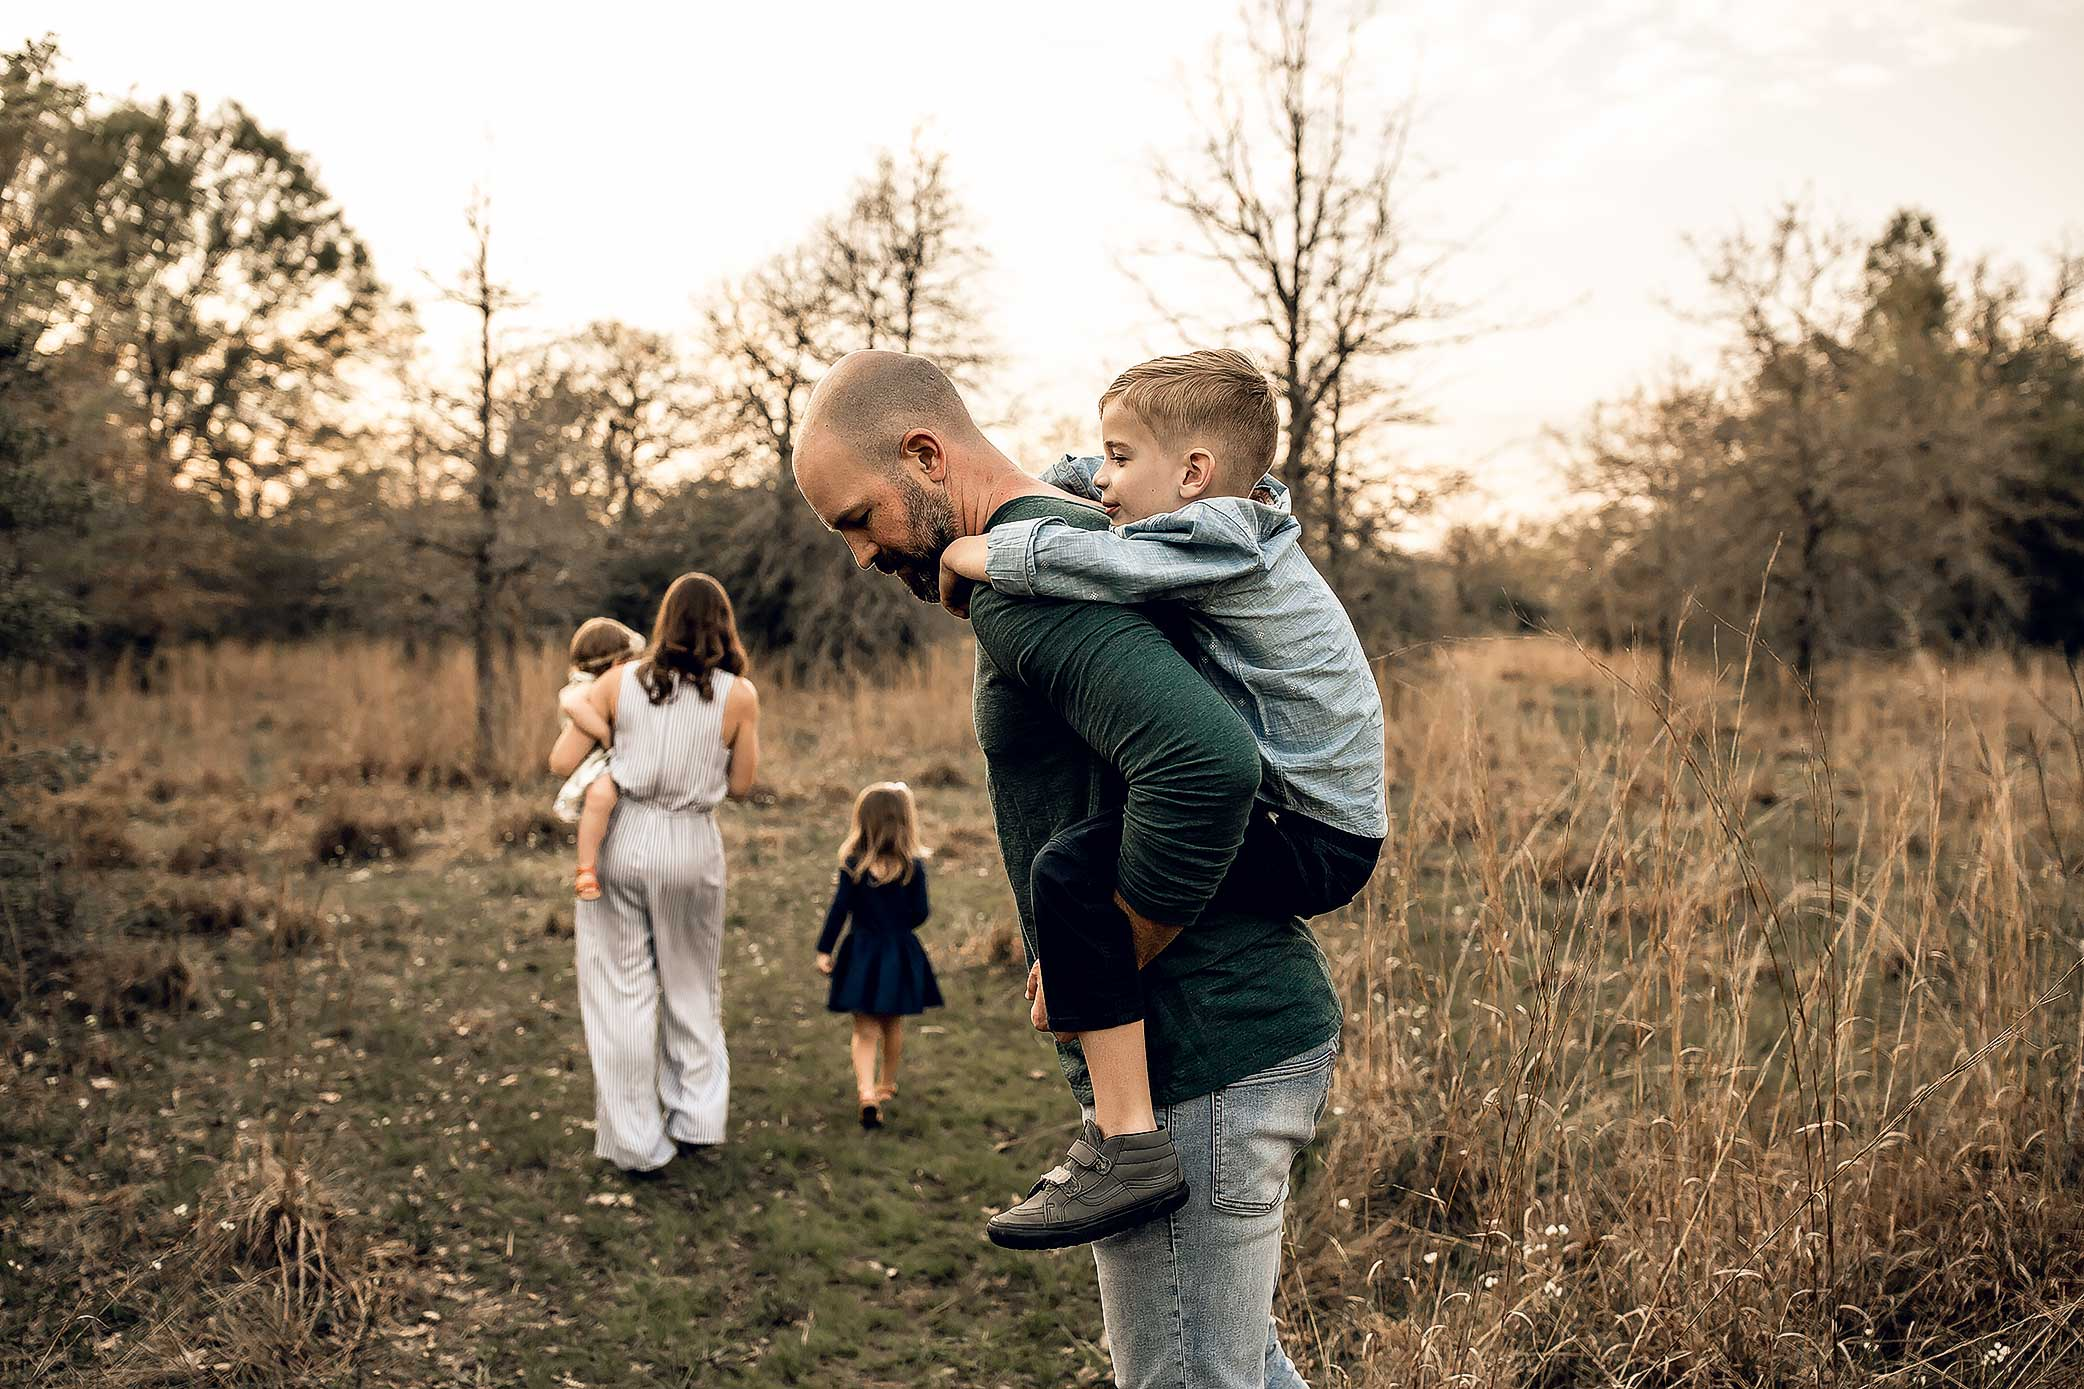 shelby-schiller-photography-lifestyle-family-session-with-3-kids-spring-2019-green-blue-yellow-college-station-42.jpg